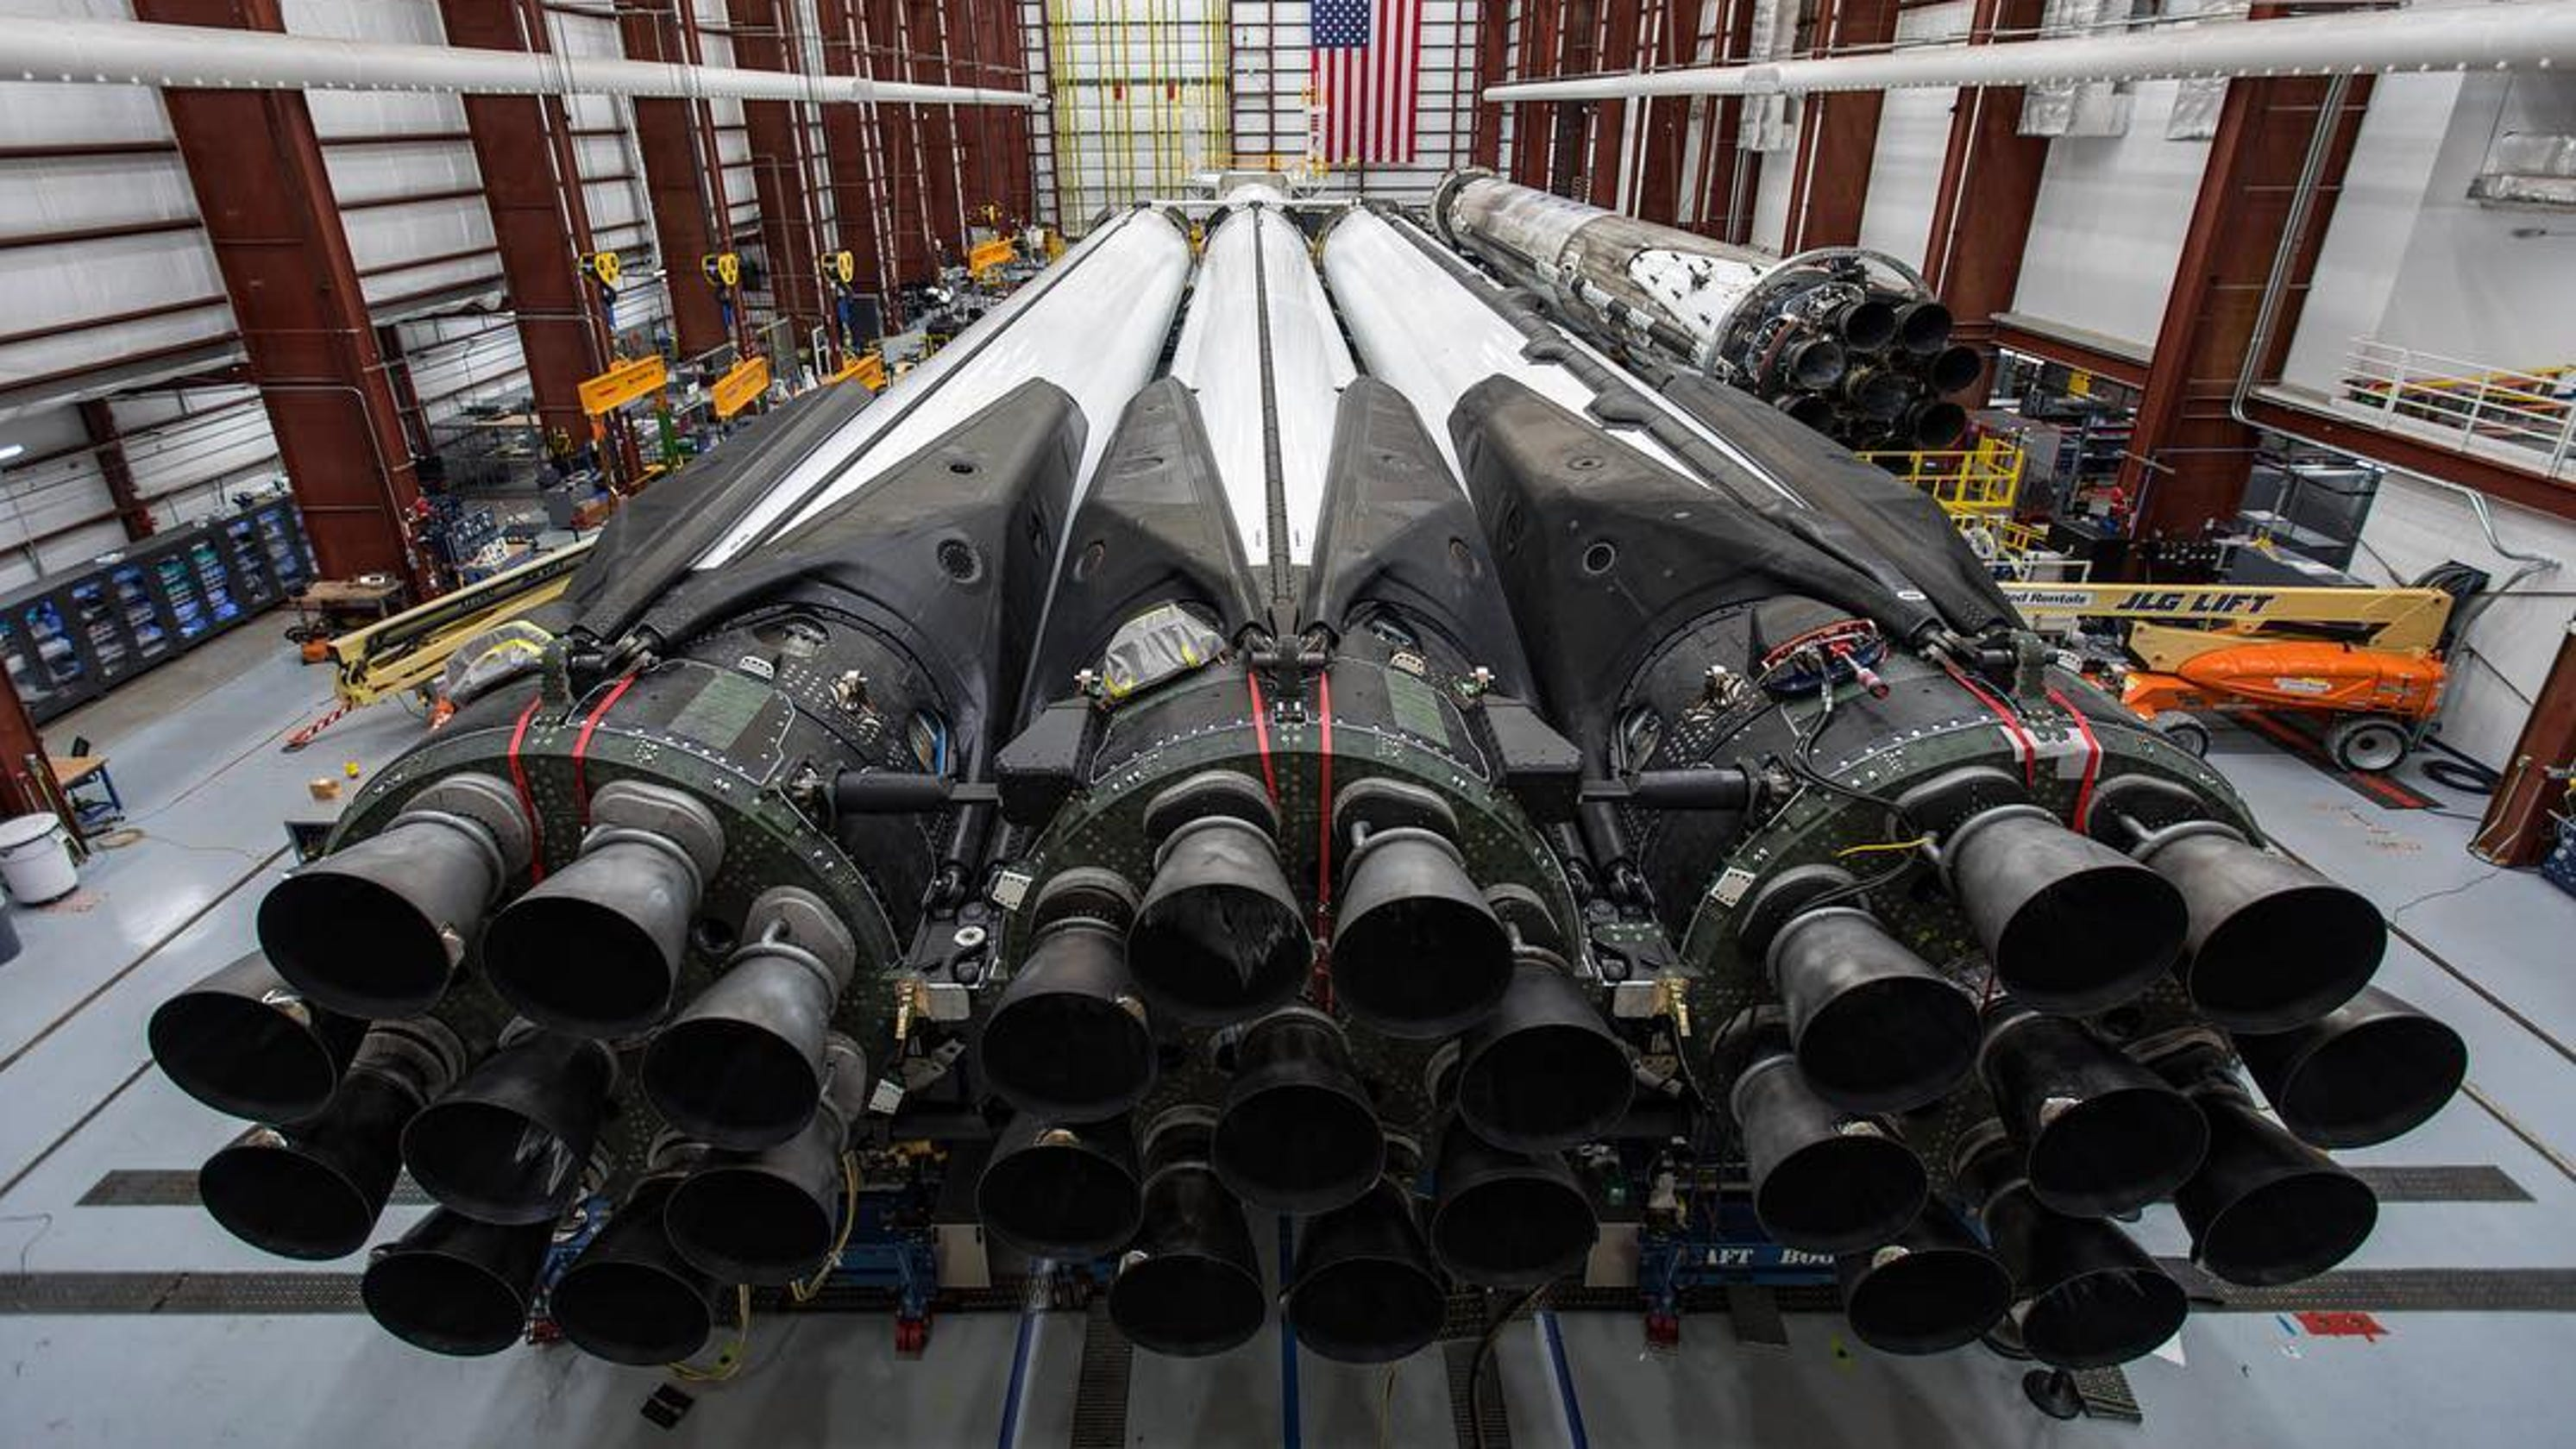 spacex falcon heavy rocket targeting new launch date from kennedy space center. Black Bedroom Furniture Sets. Home Design Ideas